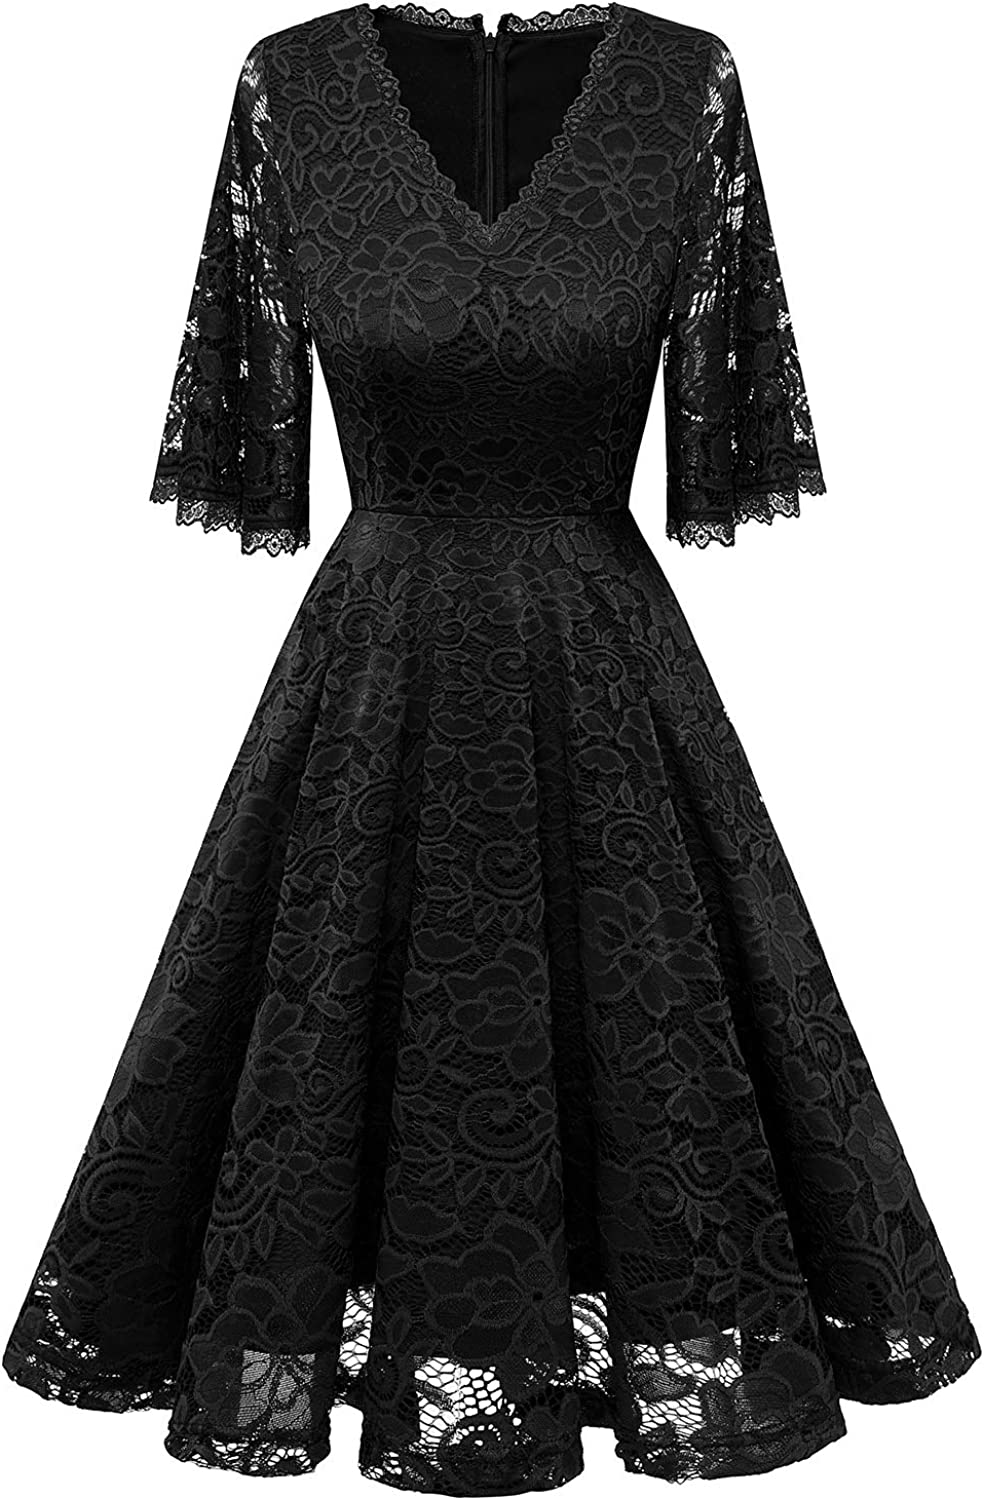 Gardenwed Women's V-Neck Floral Lace Cocktail Party Dress Wedding Bohemian Sleeve Bridesmaid Dress